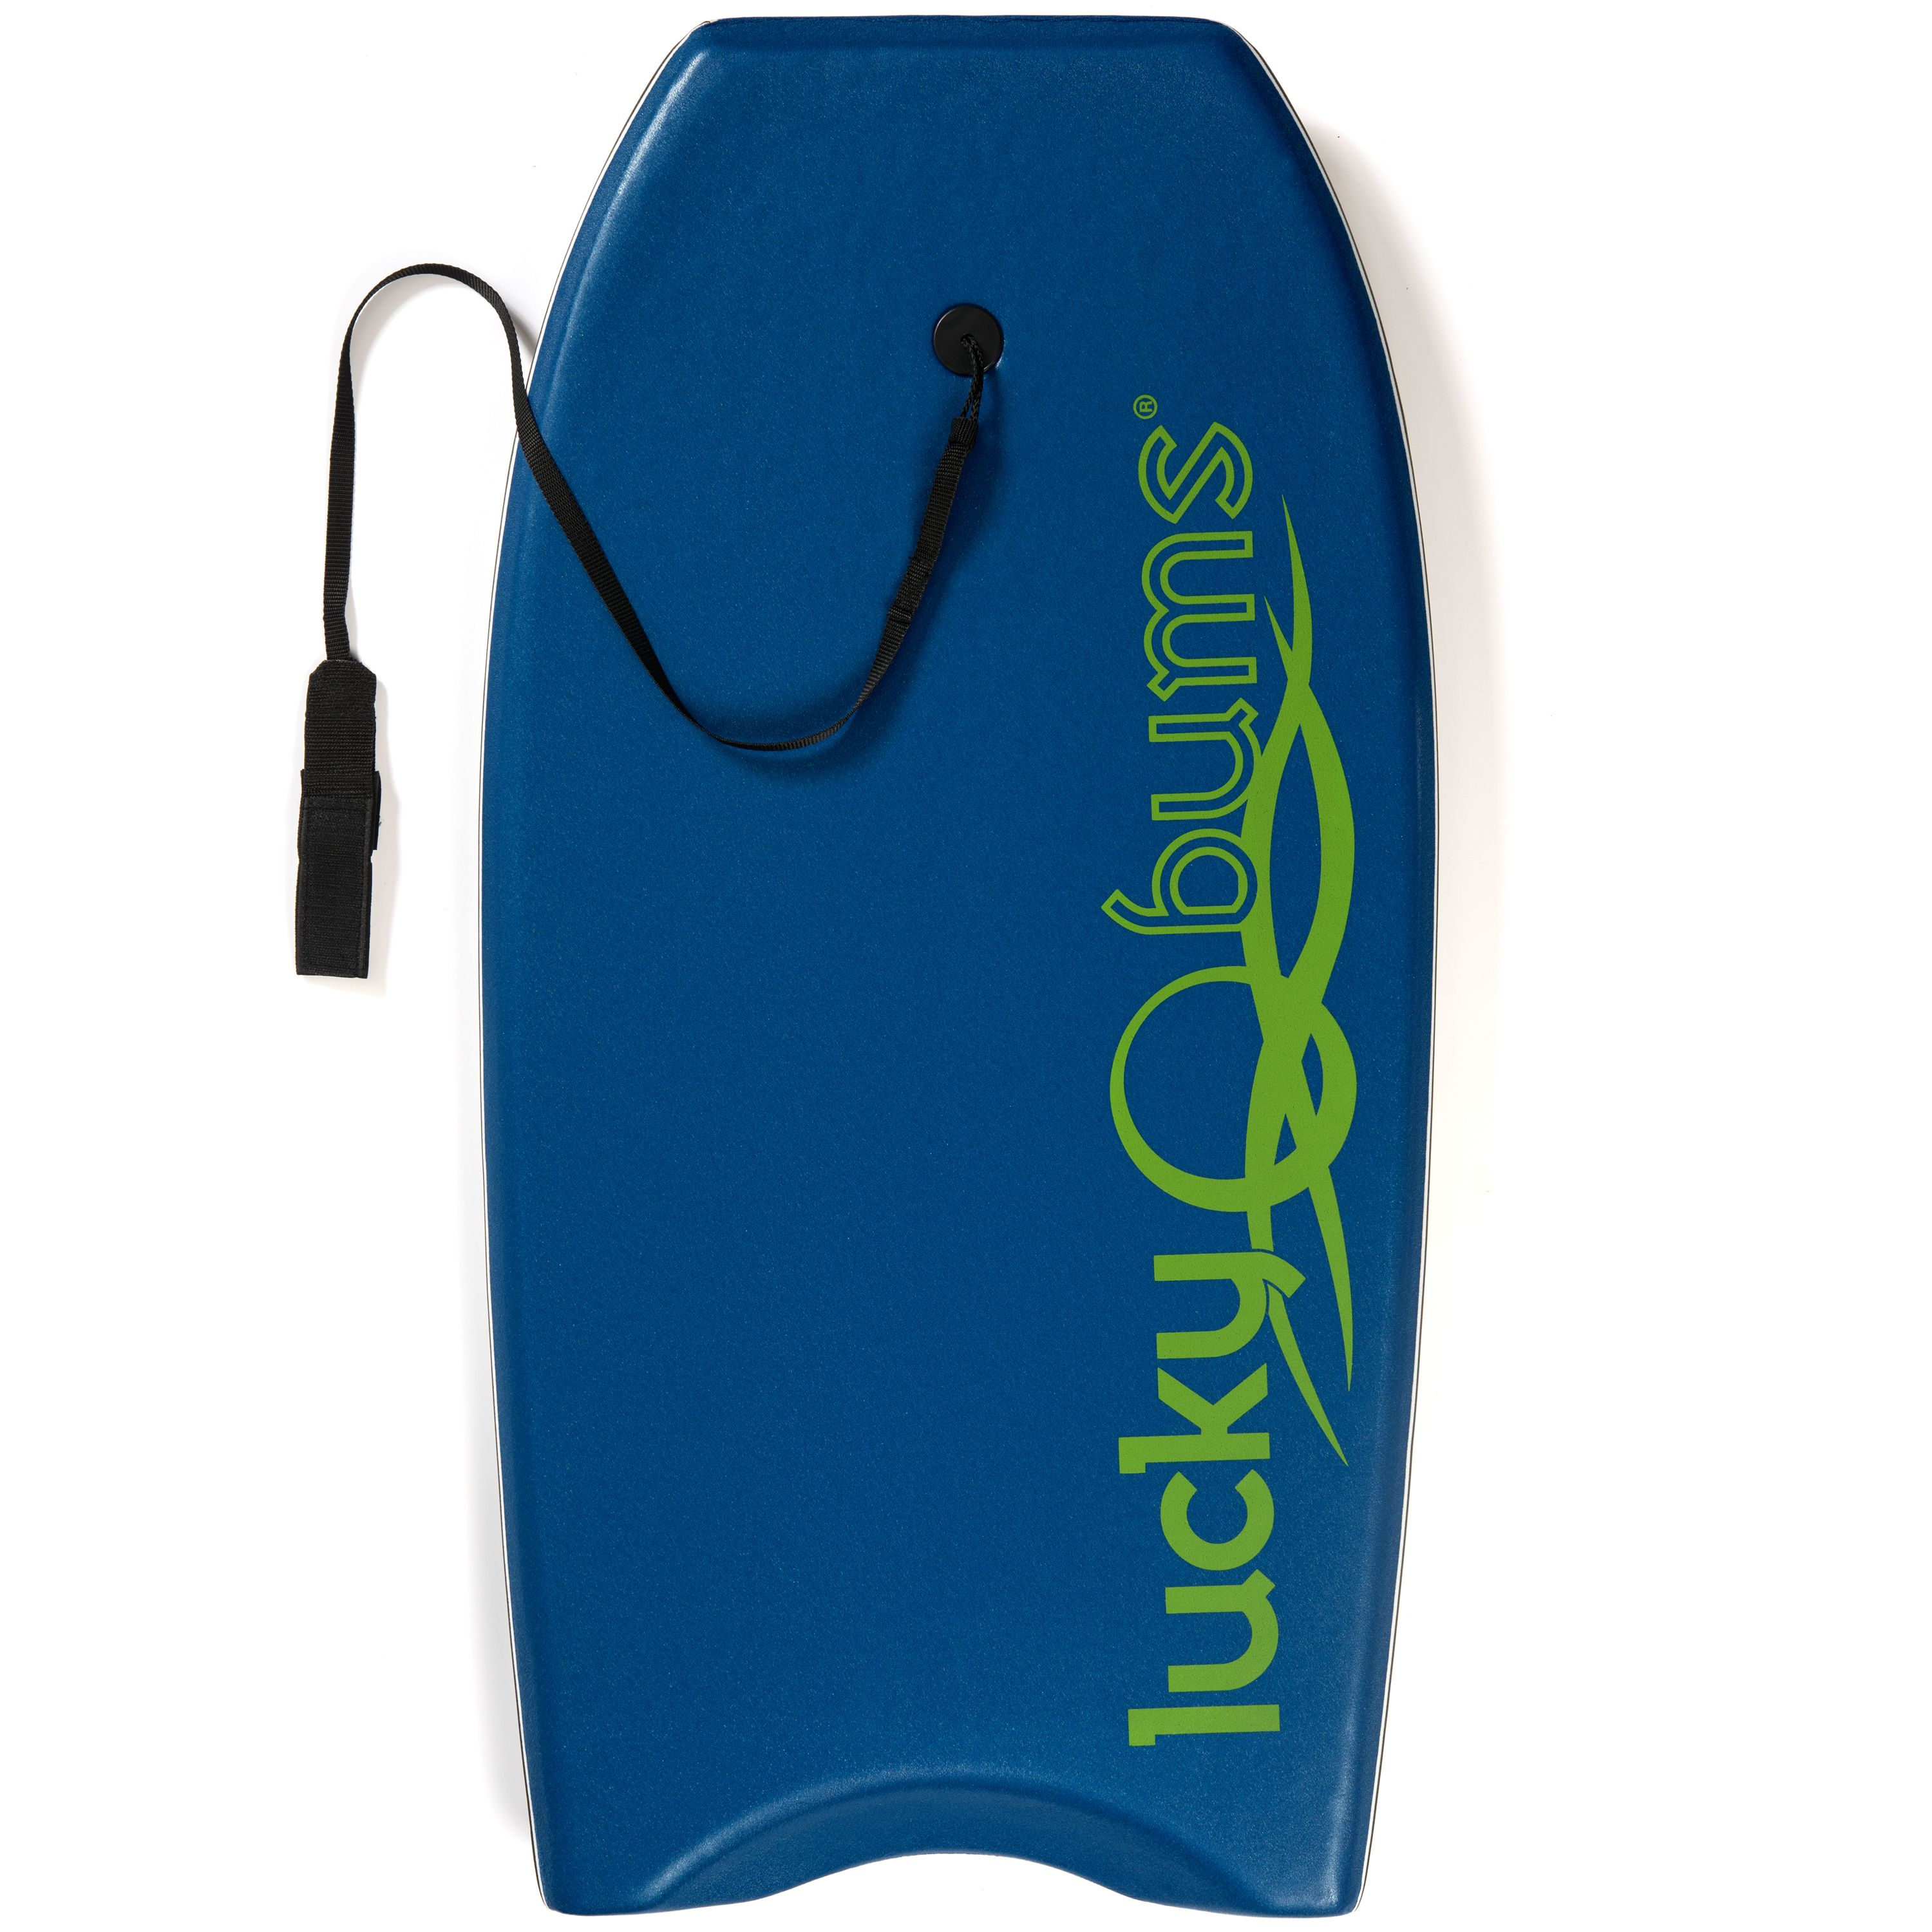 Body Board by Lucky Bums with EPS Core Slick Bottom and Leash for Kids and Adults, Blue, 41-inch